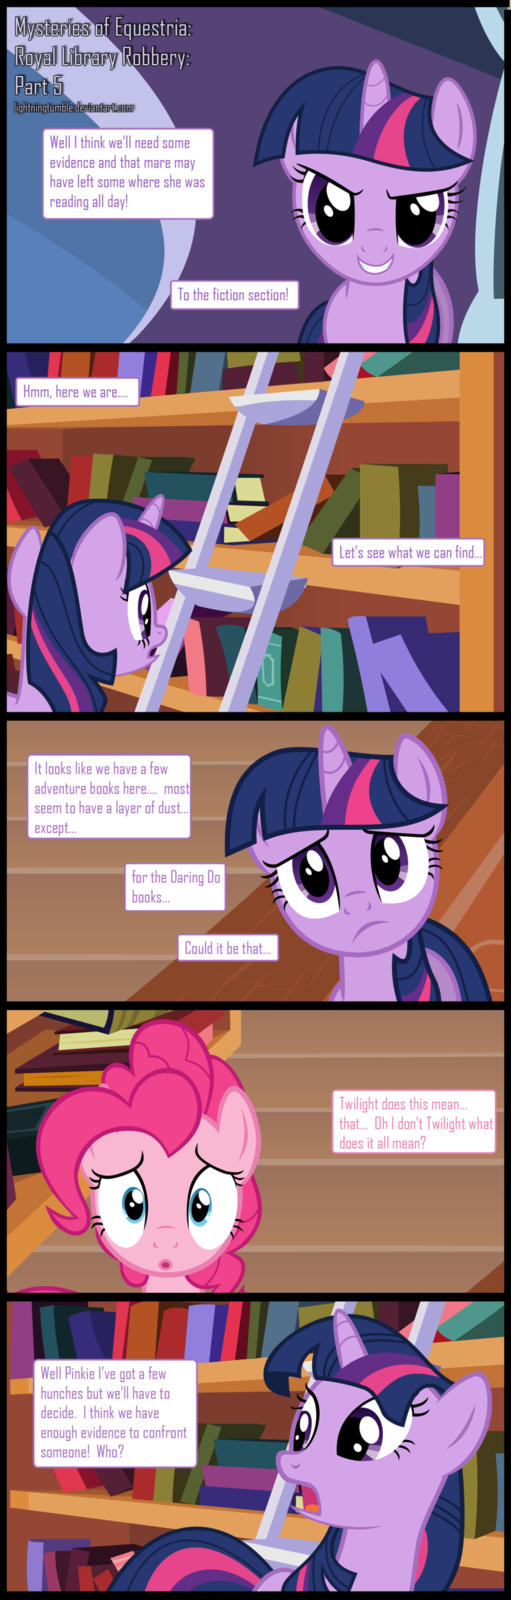 Mysteries of Equestria: Library Robbery: Part 5